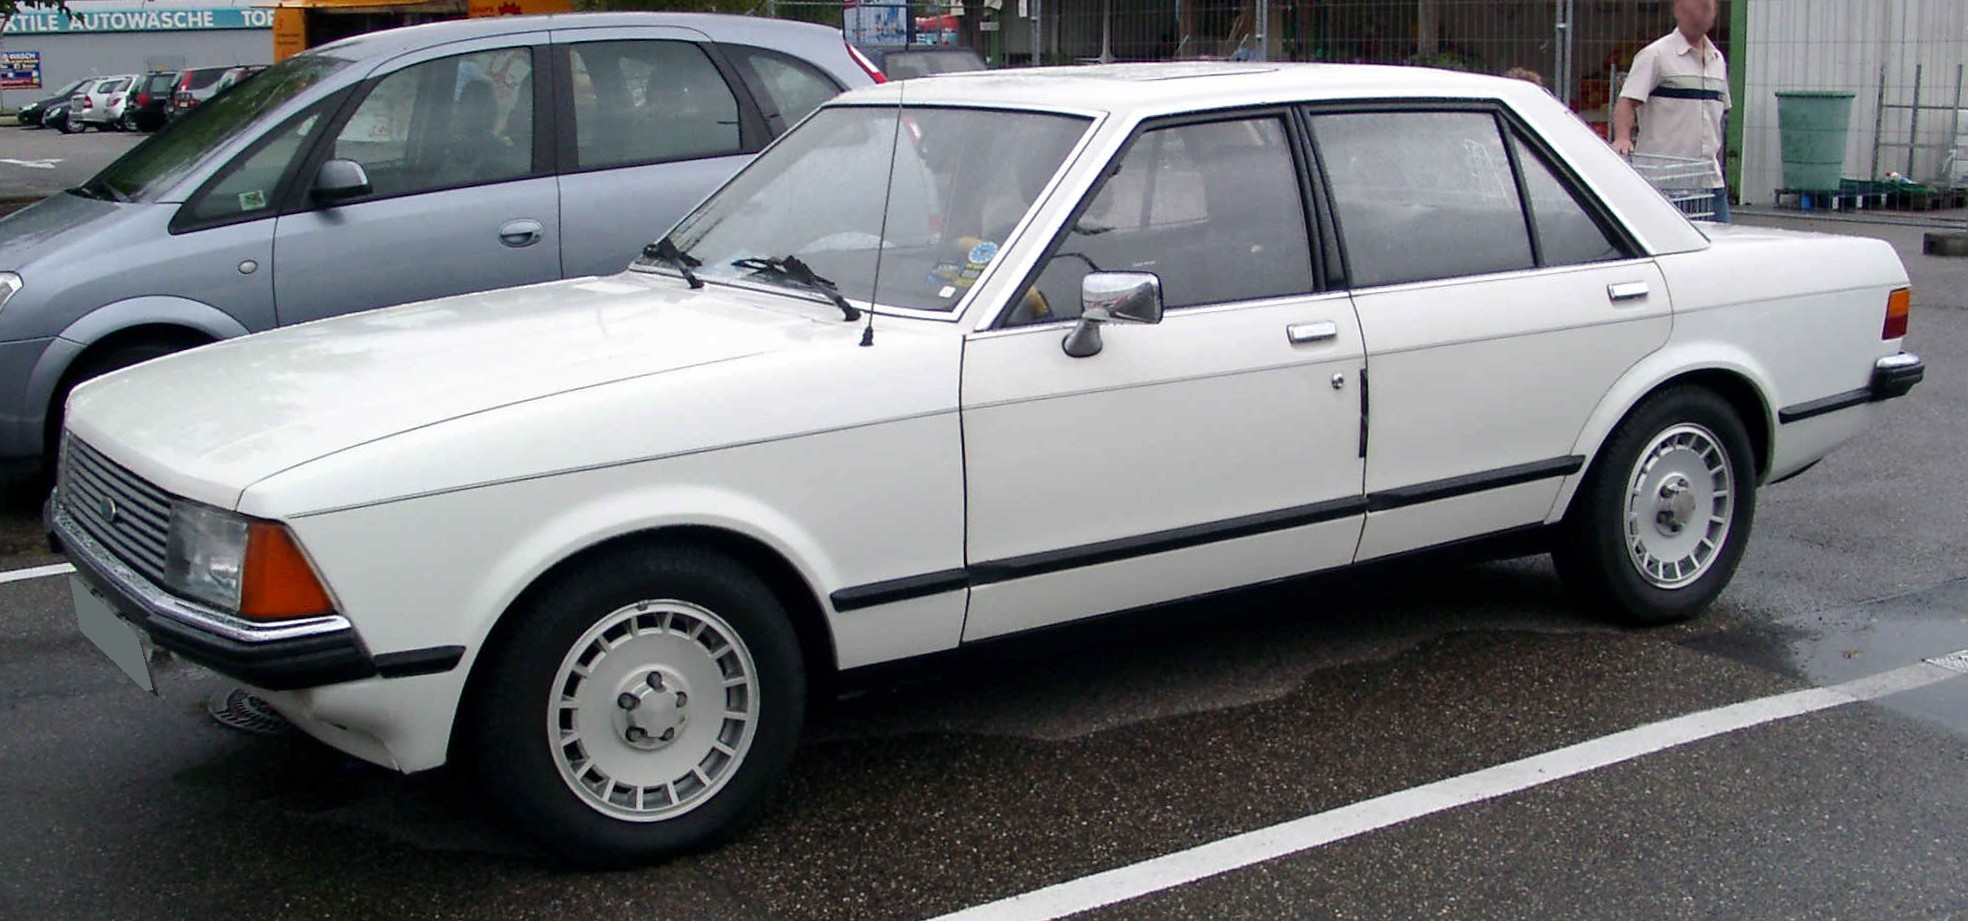 ford granada images #14